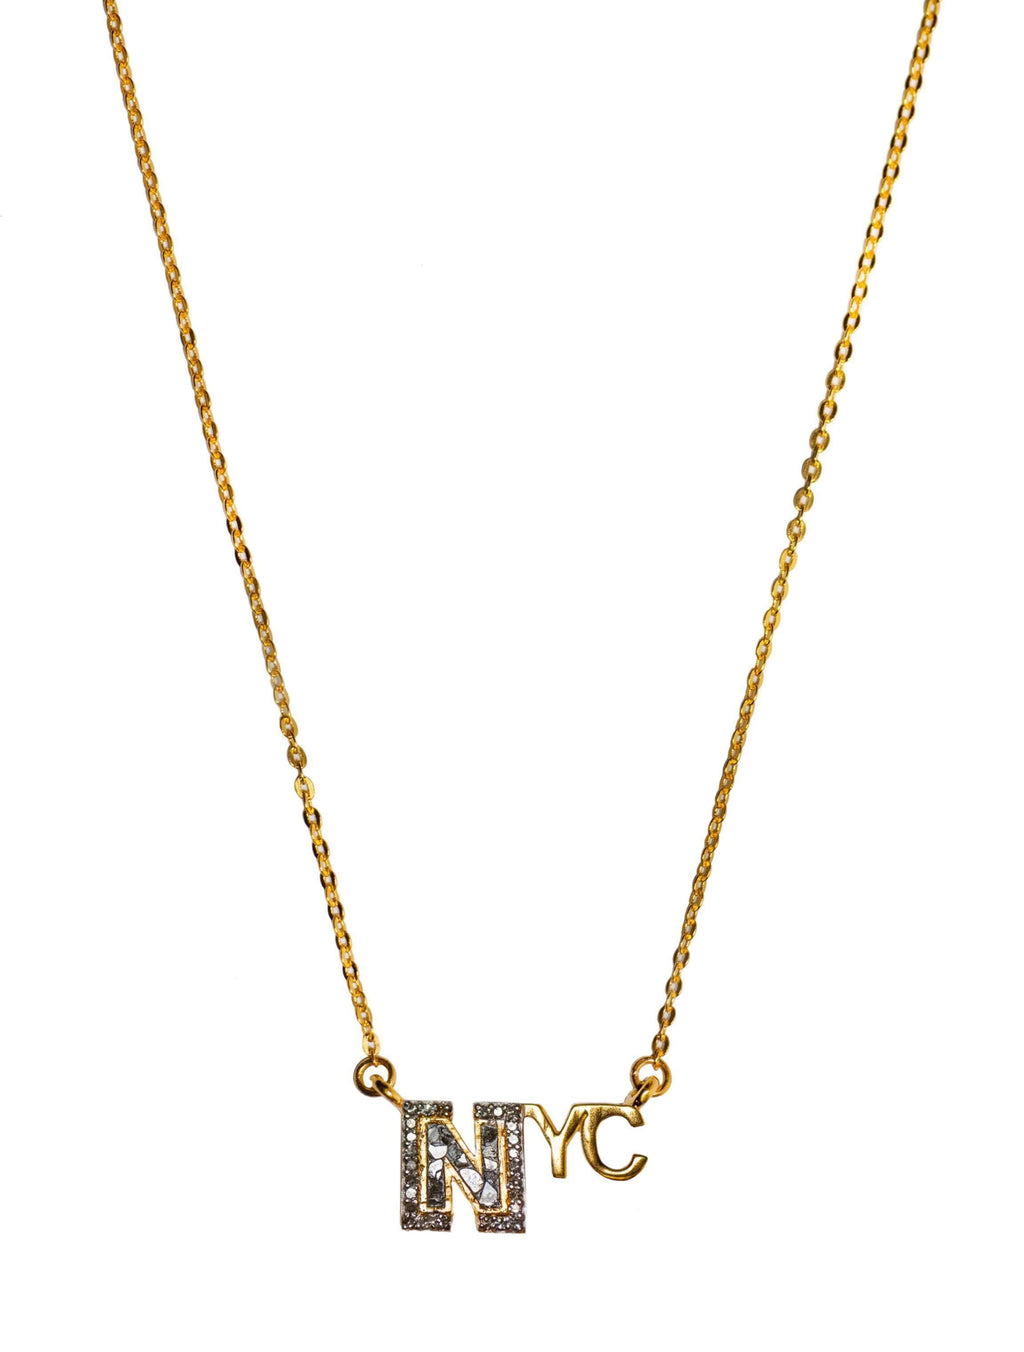 new york city word pendant necklace